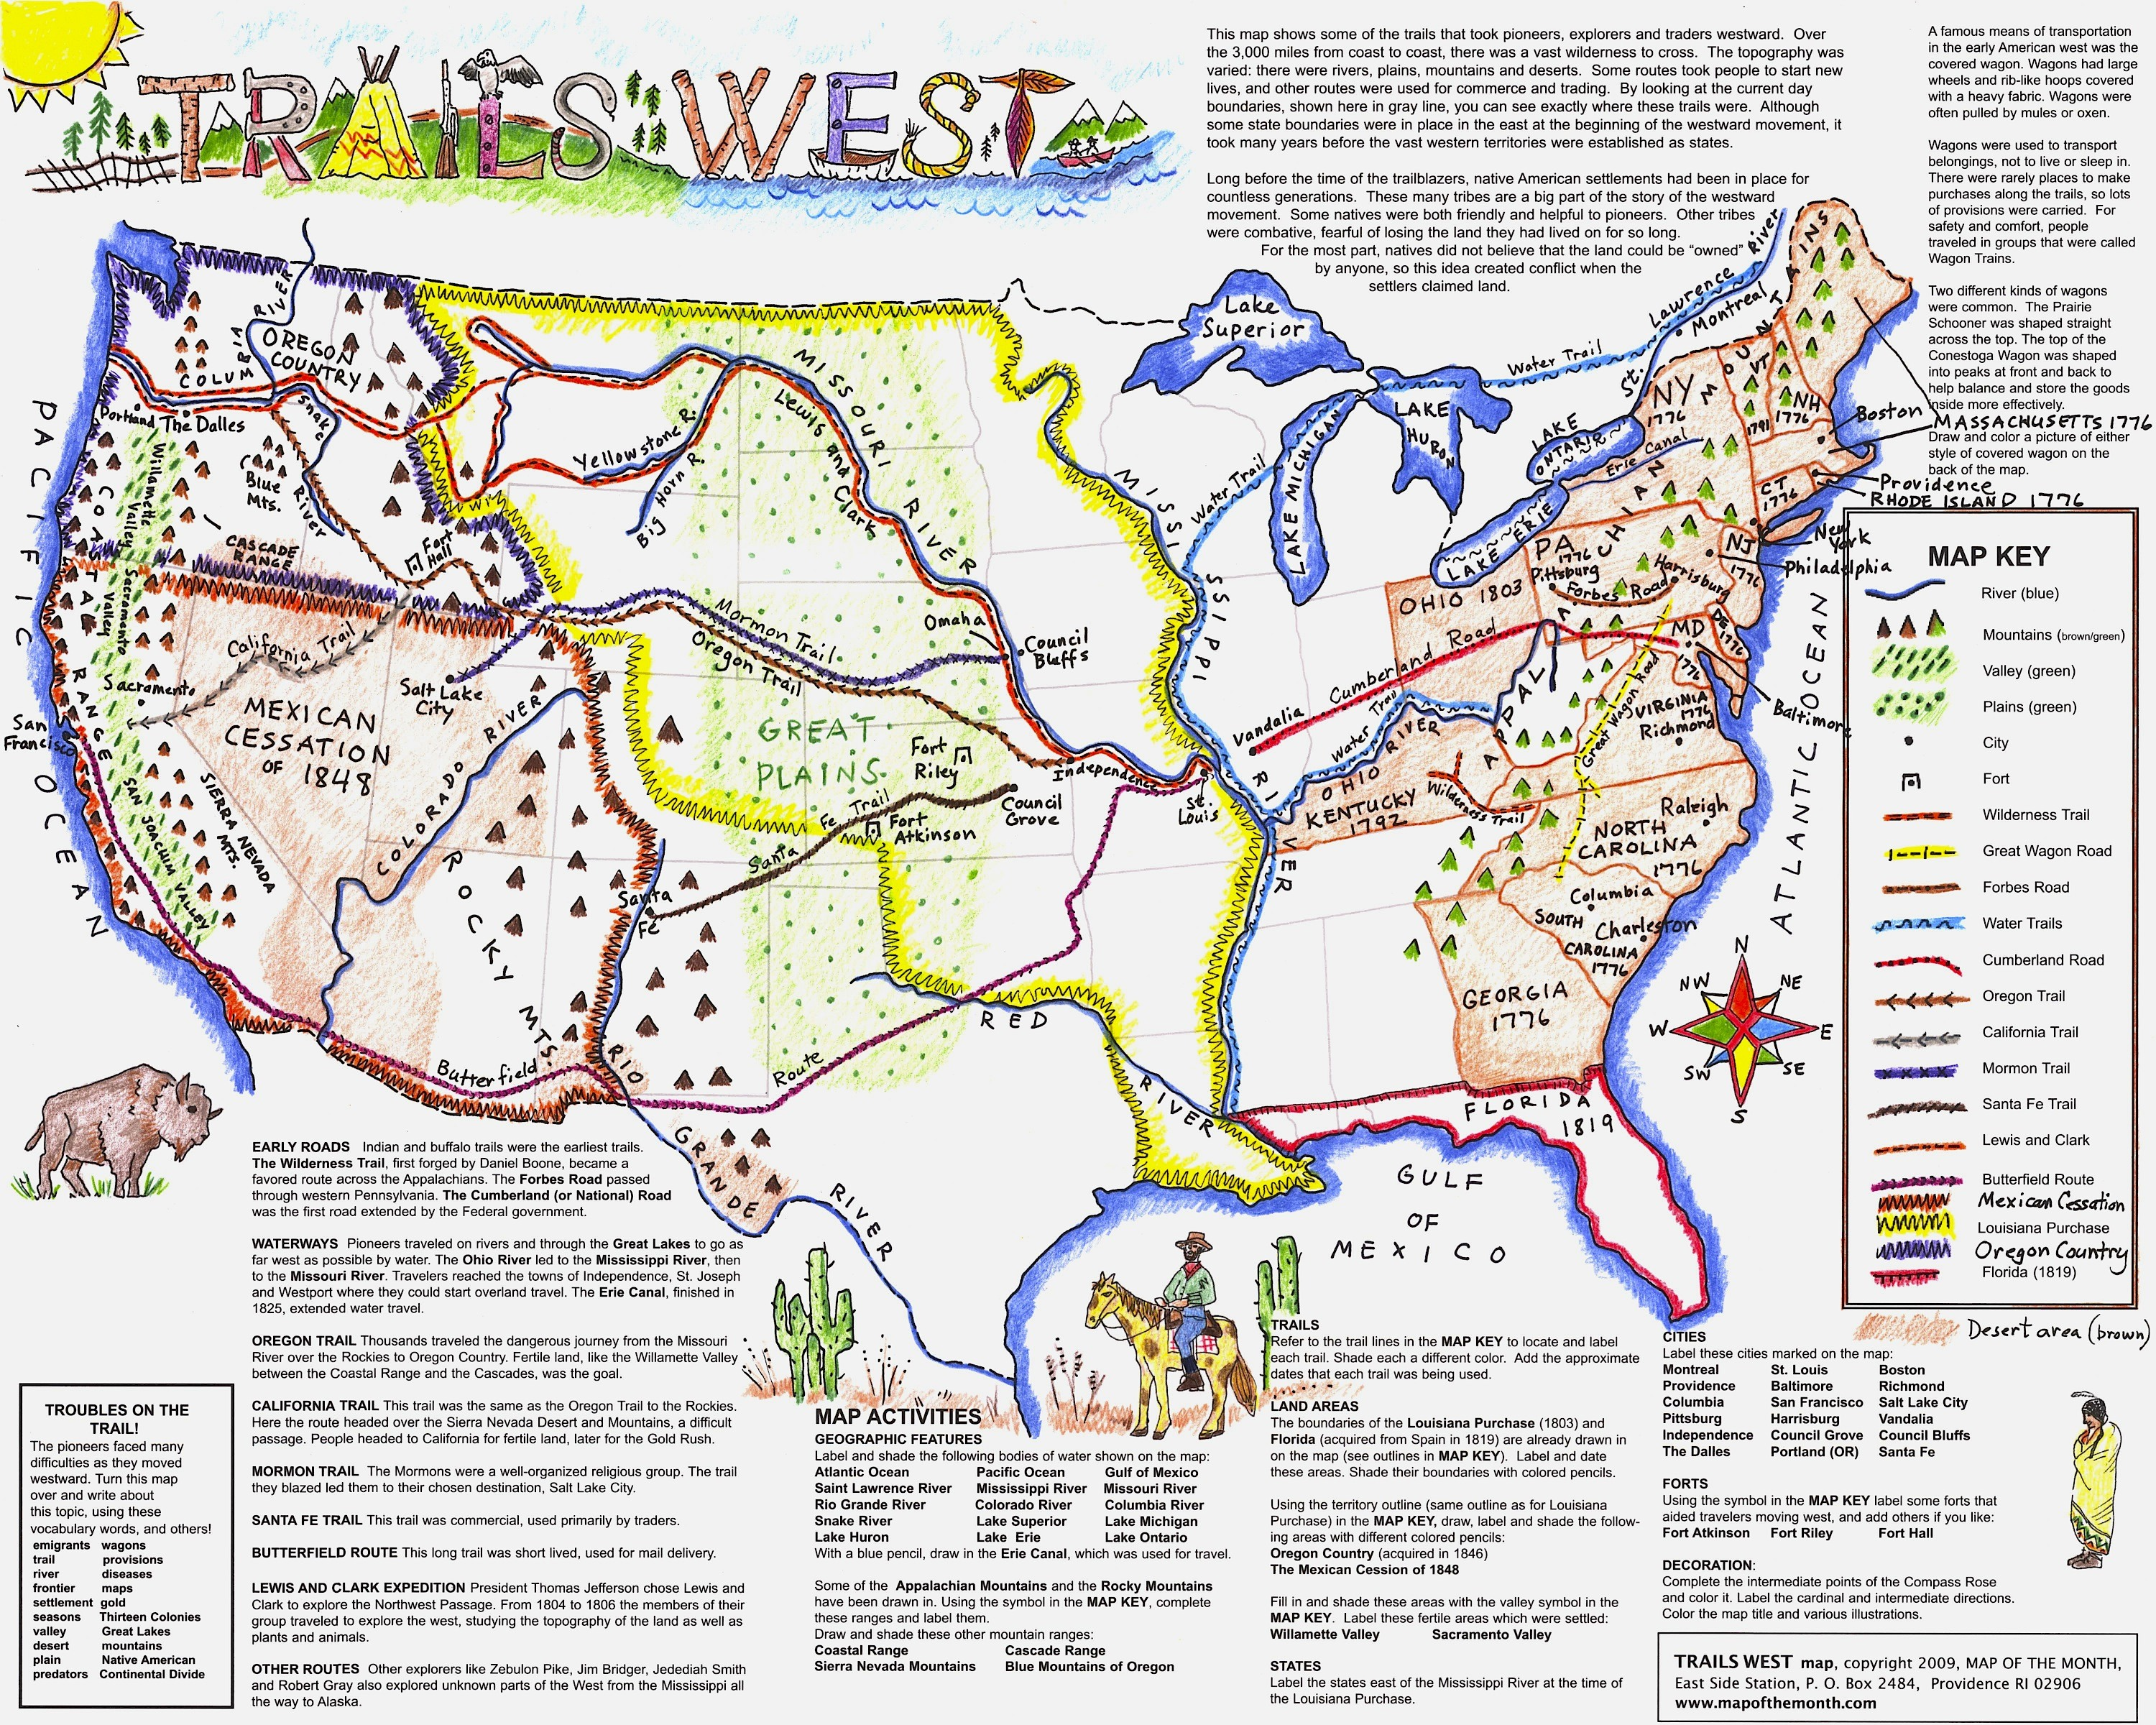 Lewis and clark map rivers rocky mountains clipart clip art library Mapping the Lewis and Clark Expedition in your classroom ... clip art library